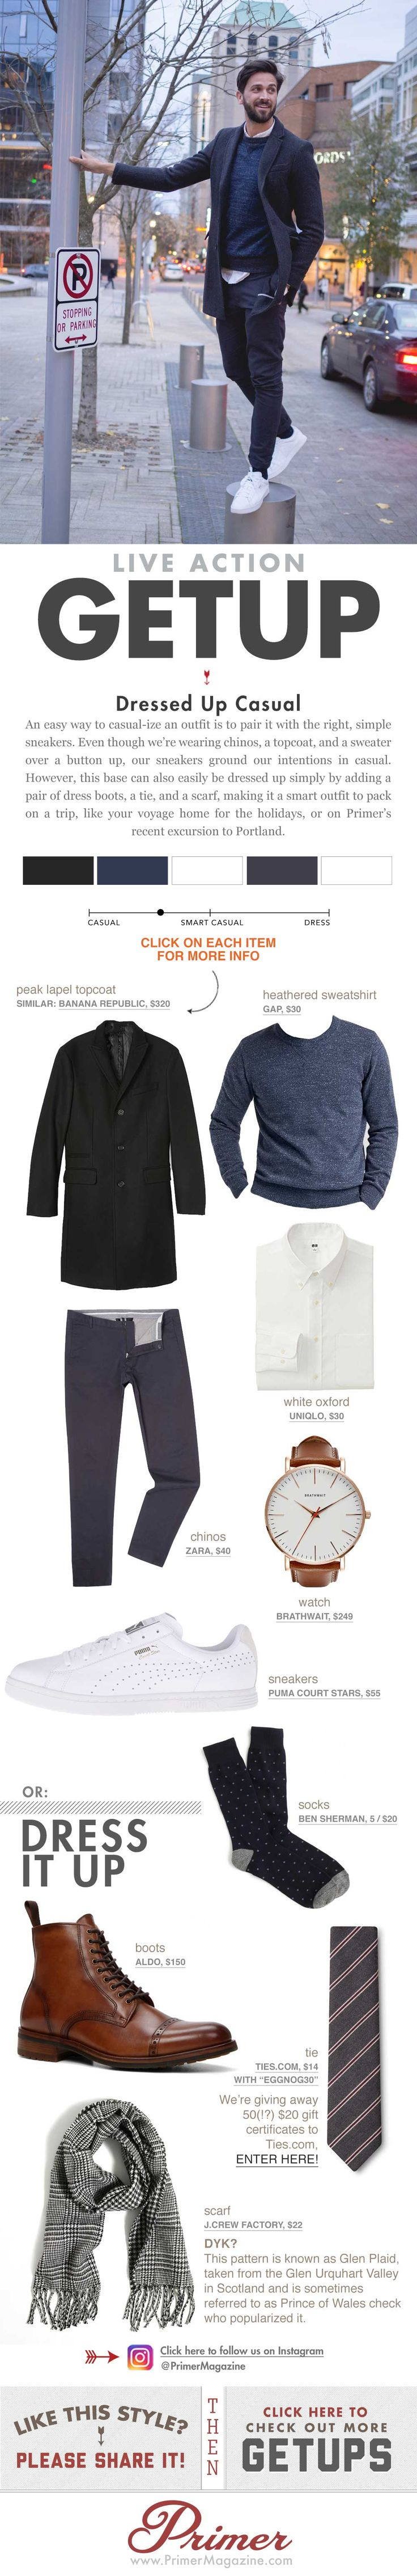 The Getup: Dressed Up Casual